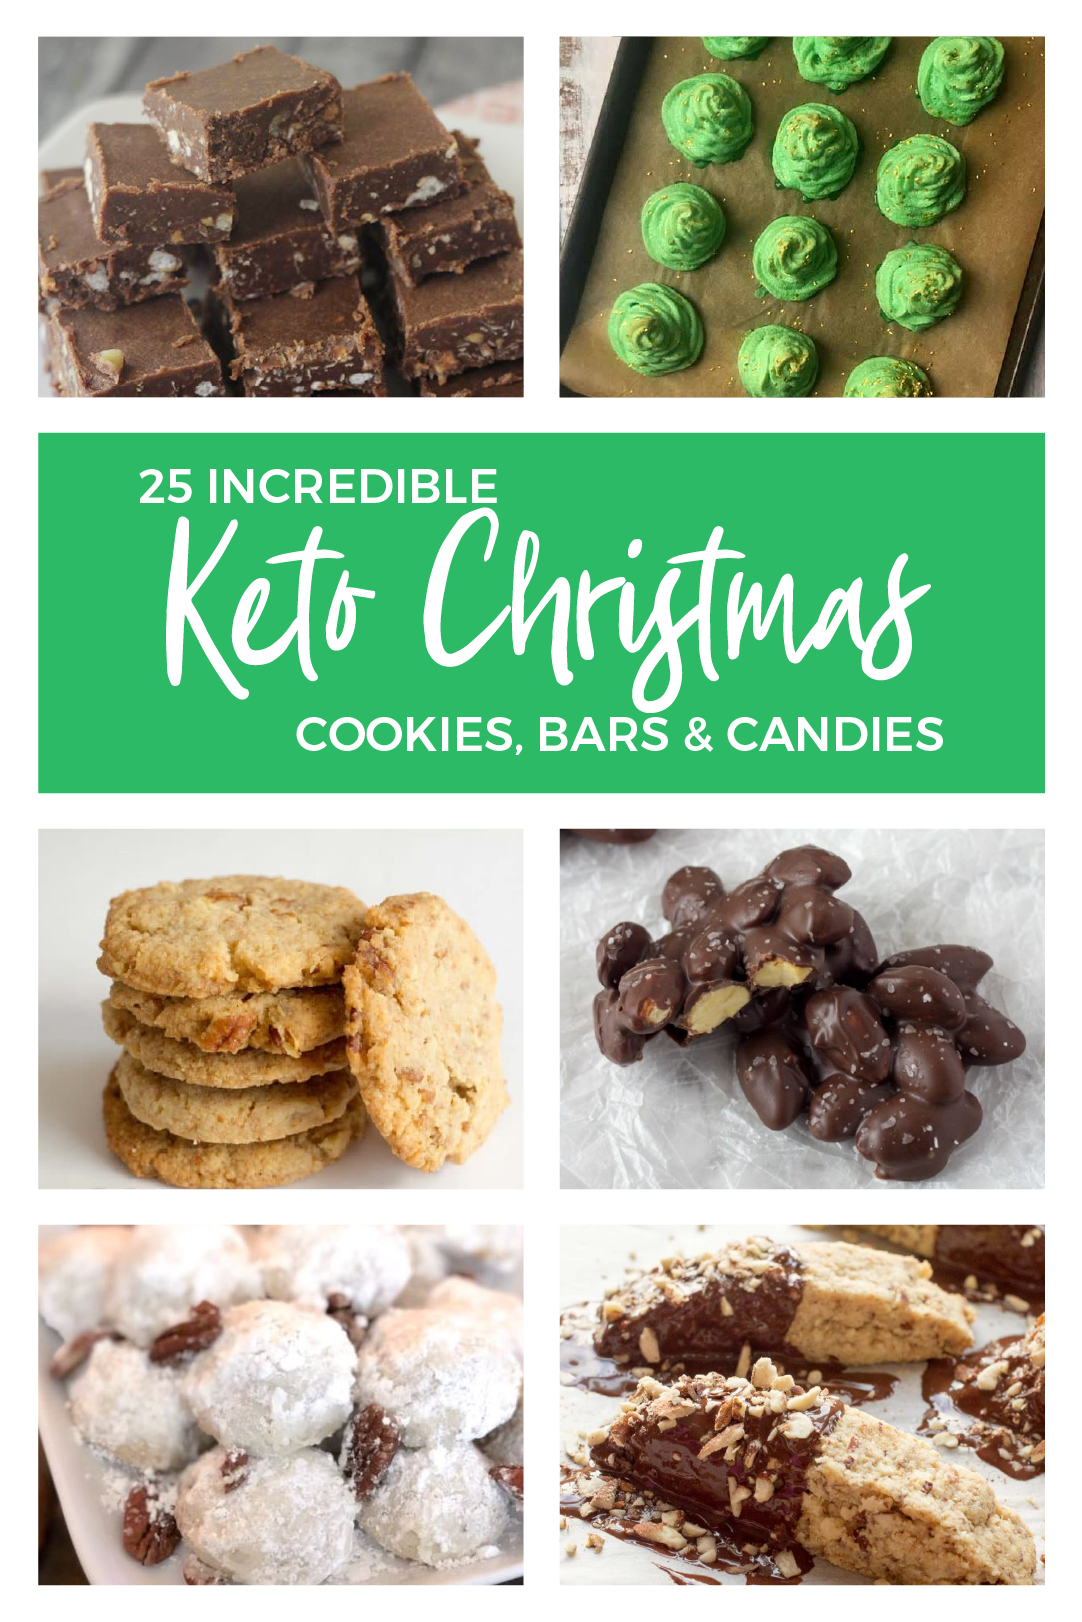 Keto Christmas Cookies, Bars, & Candy Recipes: 25 Incredible Recipes